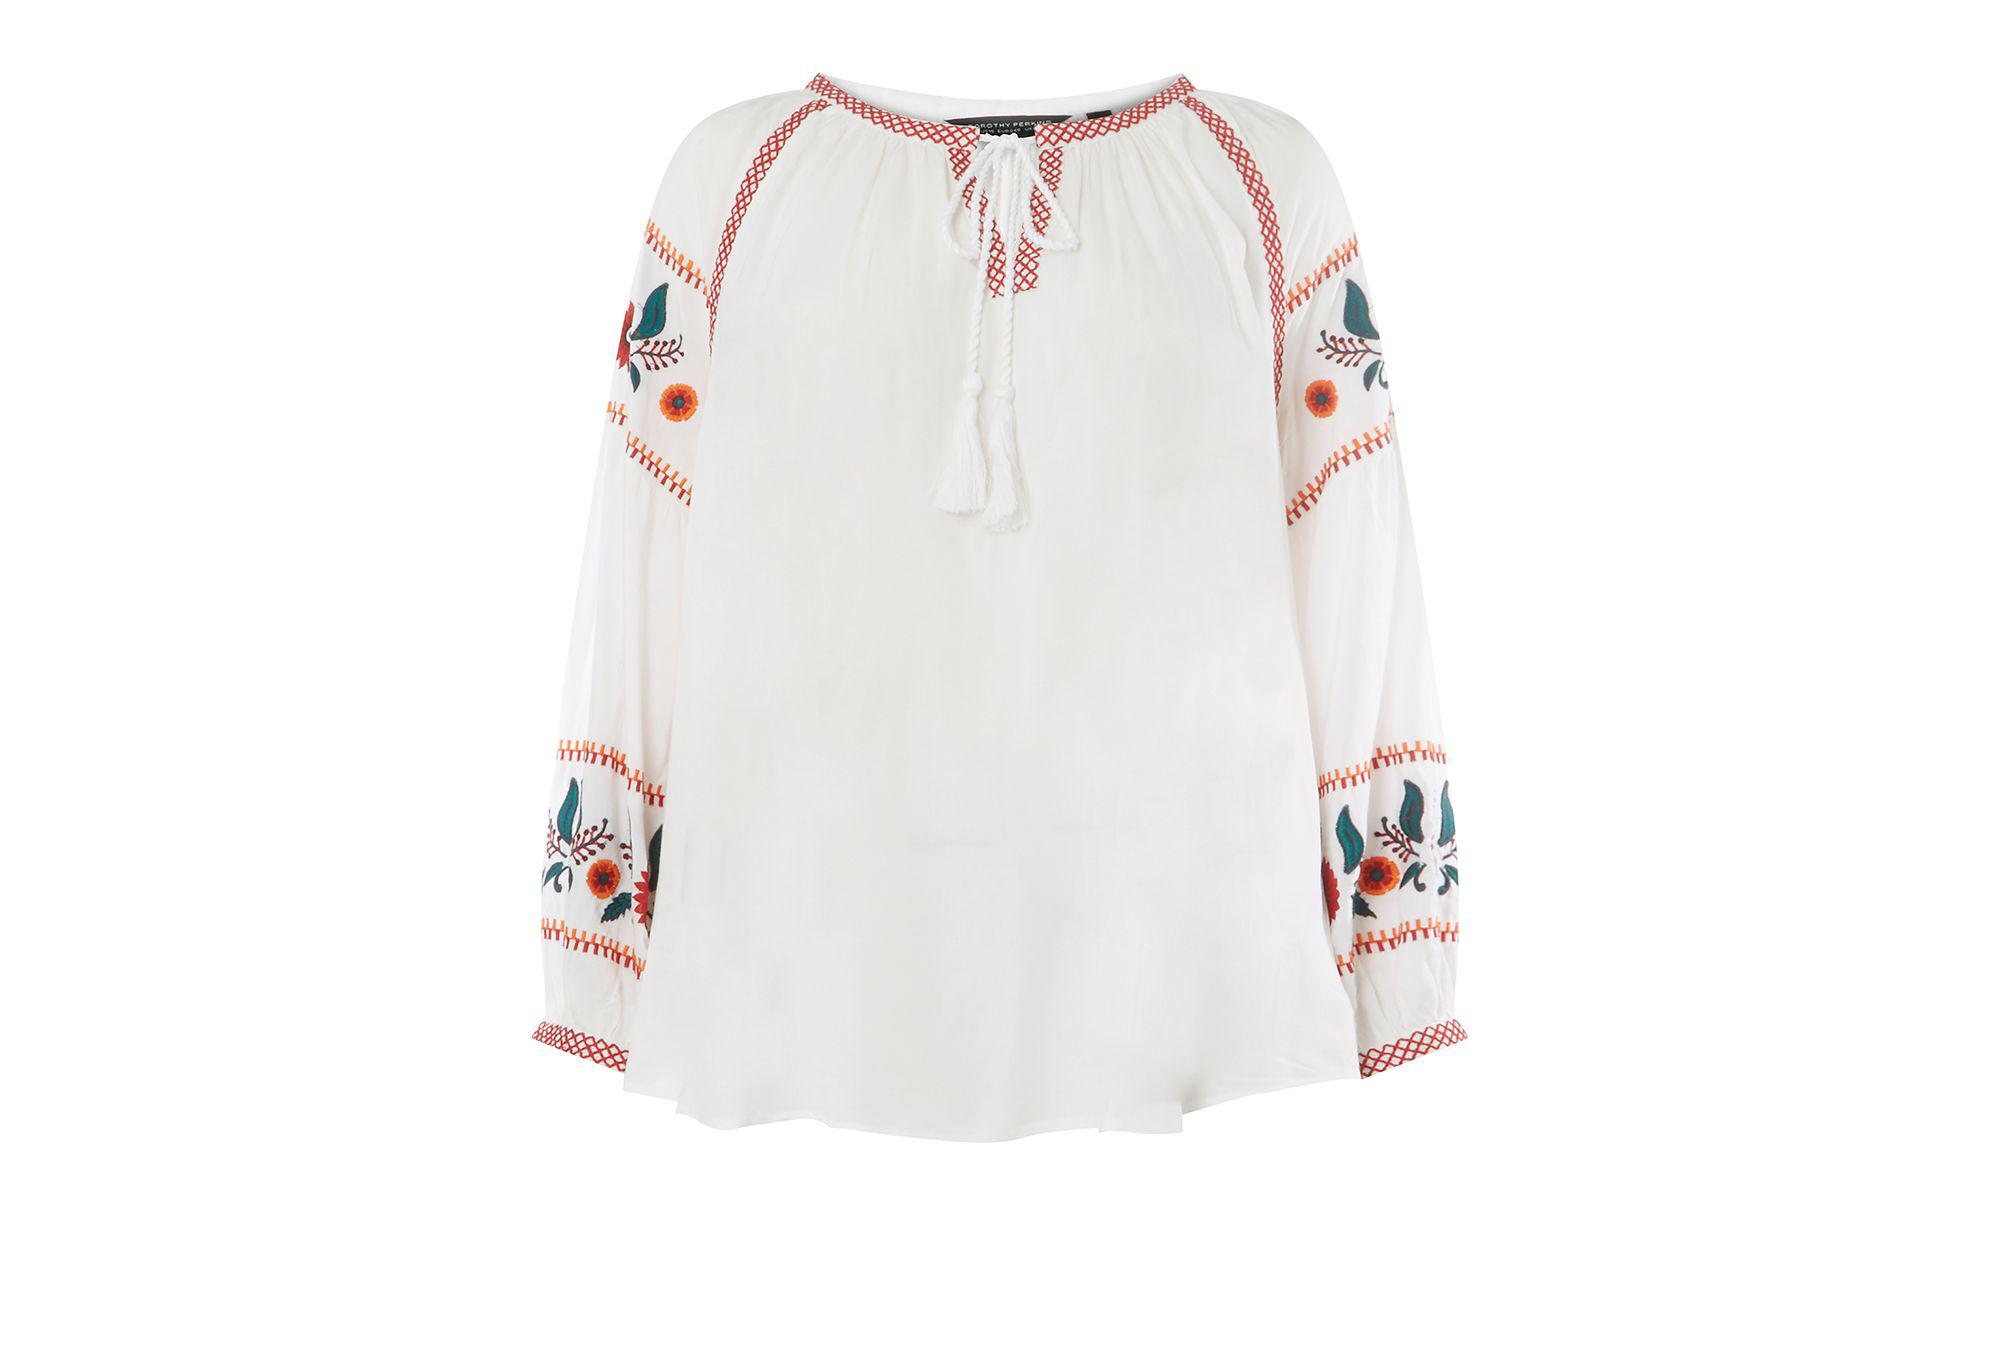 Enjoy For Sale Clearance Amazing Price Dorothy Perkins Womens Embroidered Boho Top- Sale Fake Many Kinds Of aqNvSq